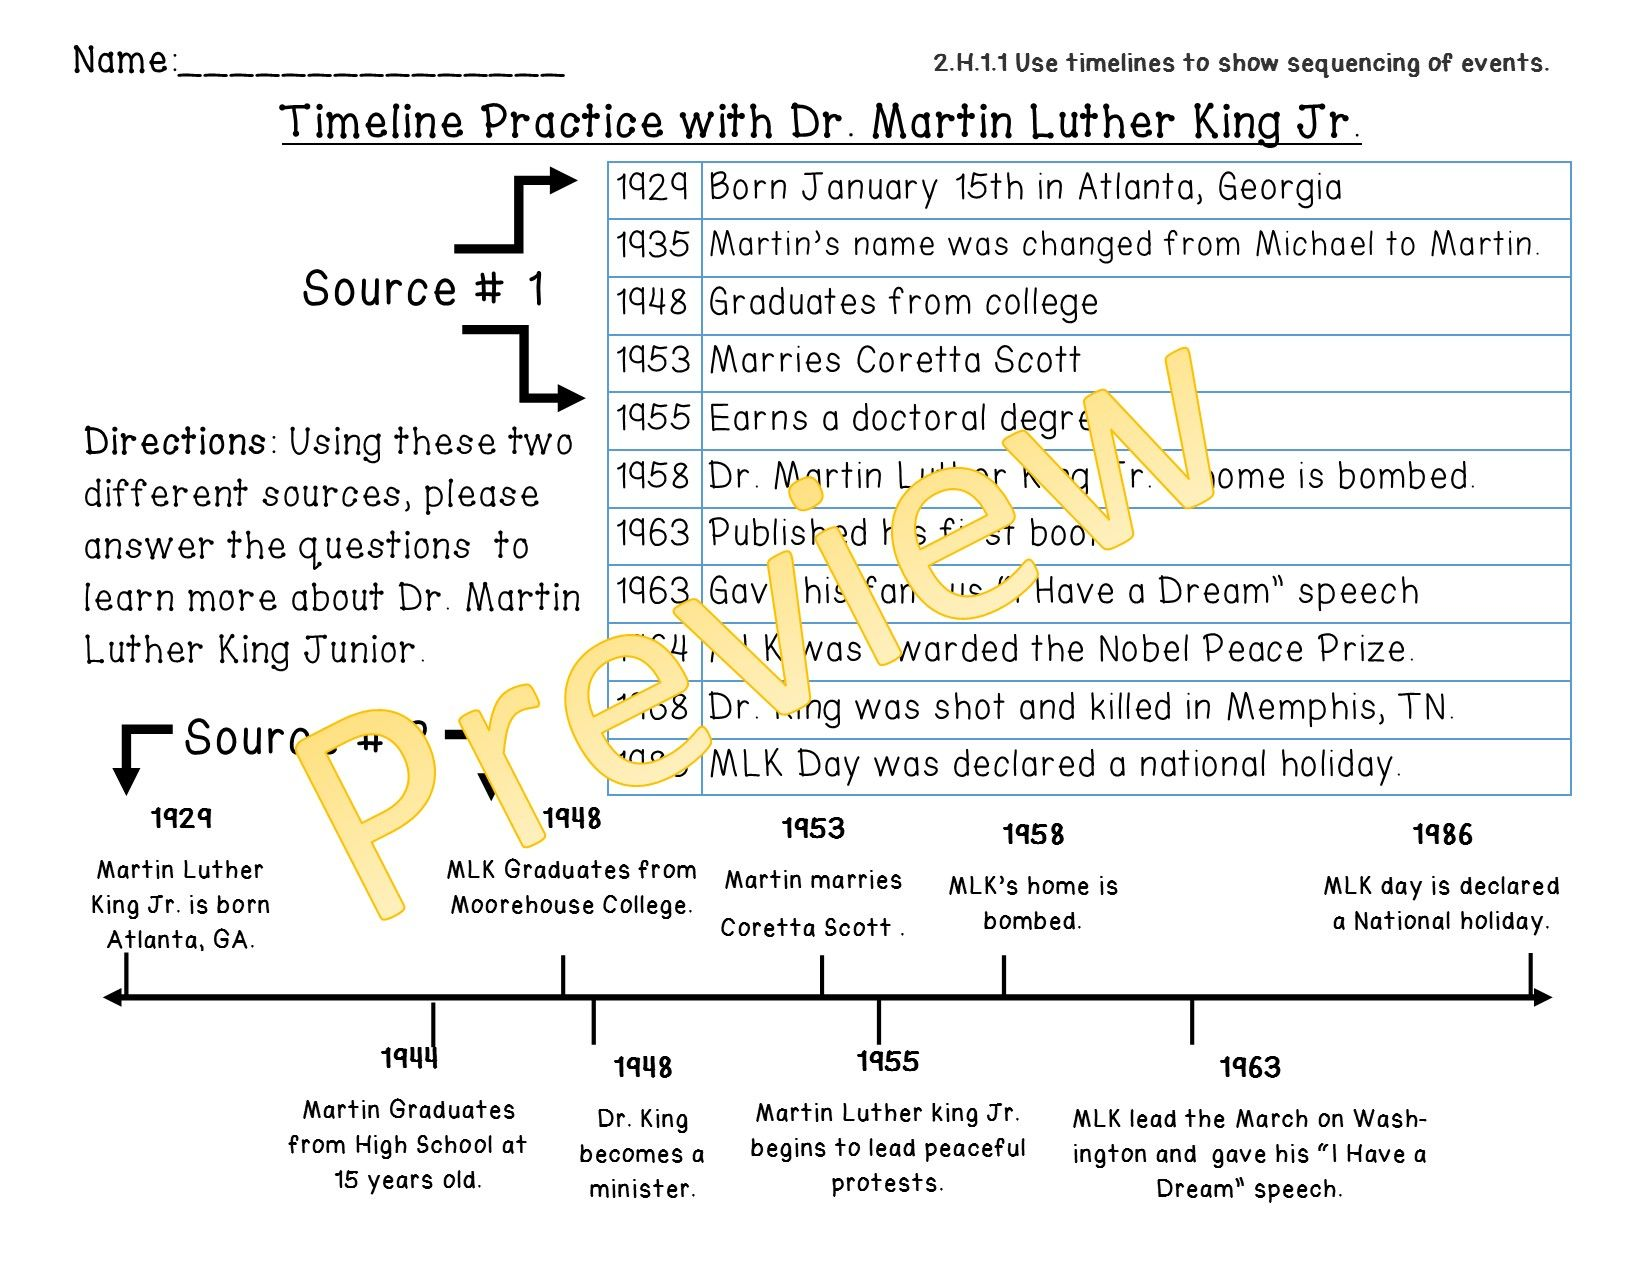 Martin Luther King Jr Timeline With Images